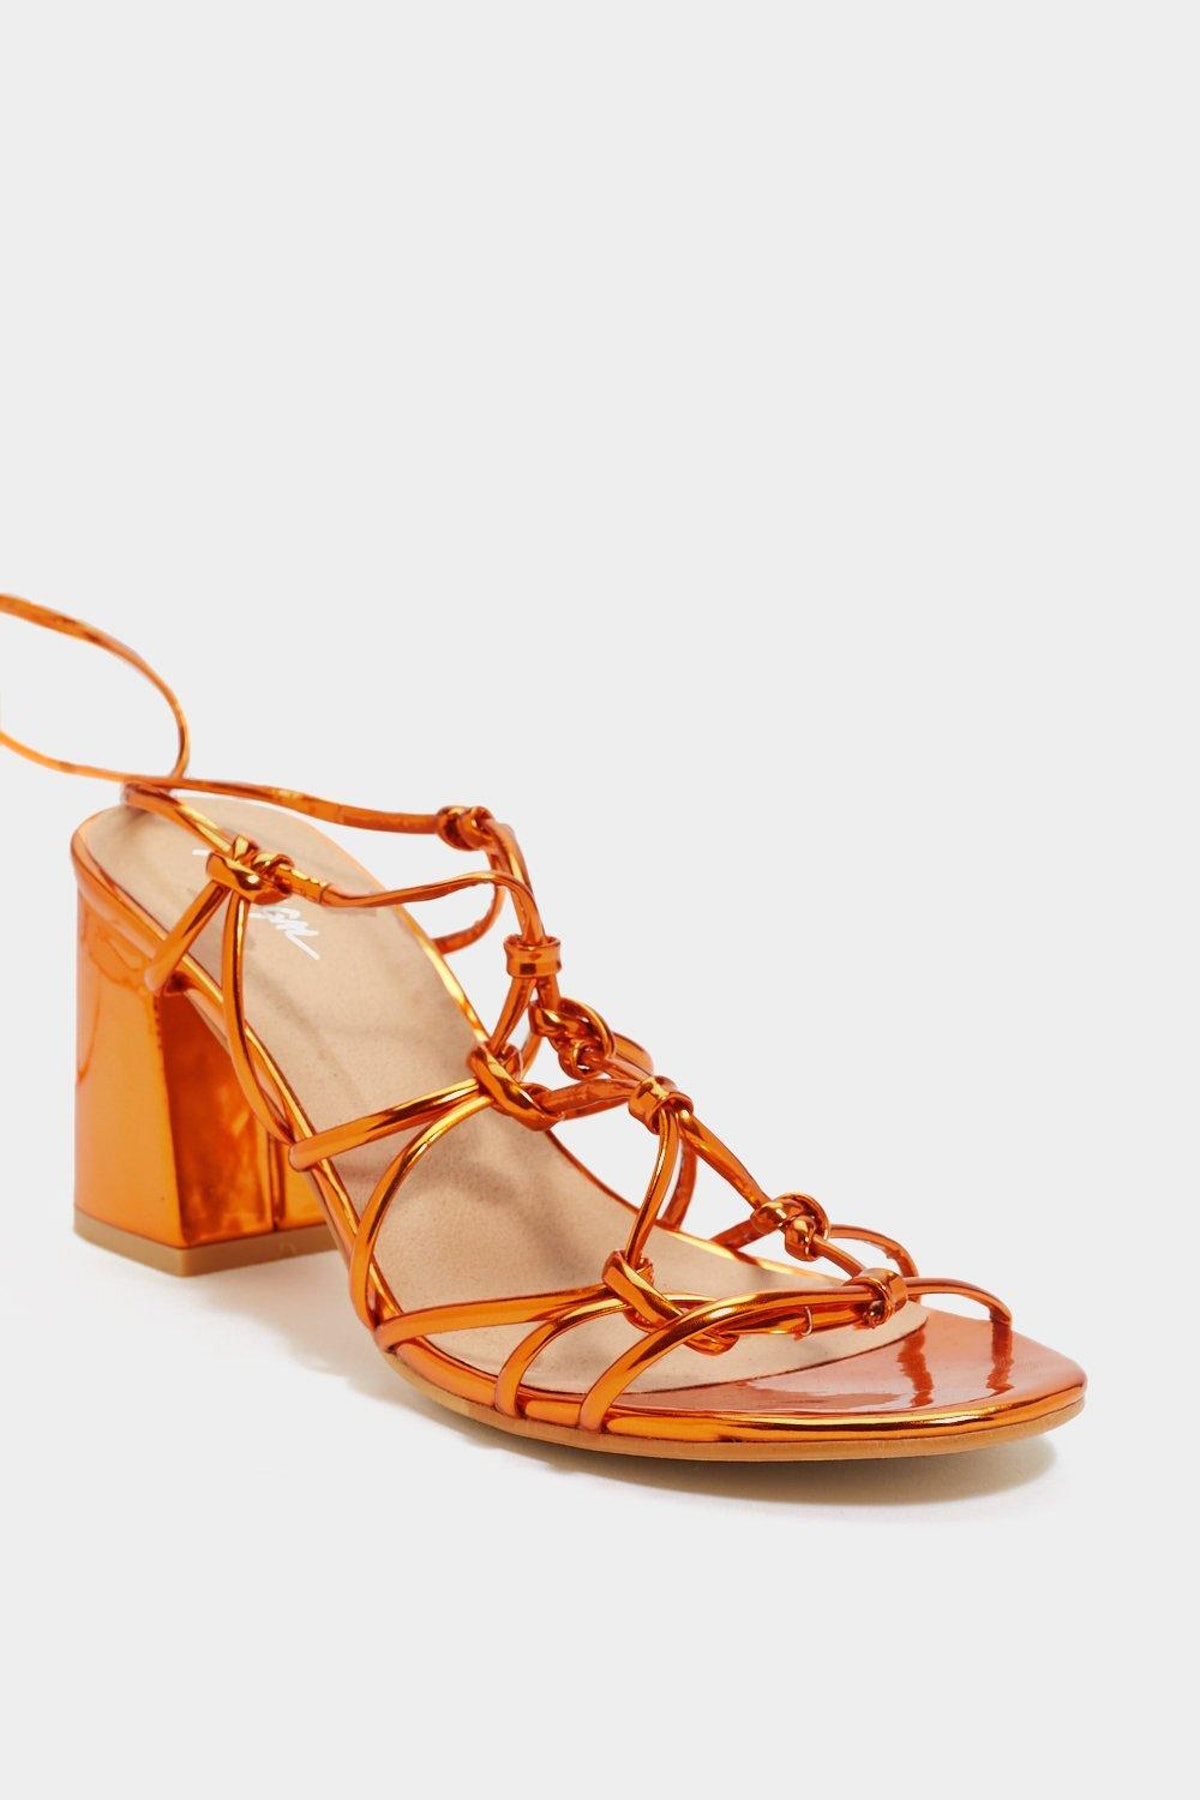 Knot a Lot to Ask Strappy Tie Sandals